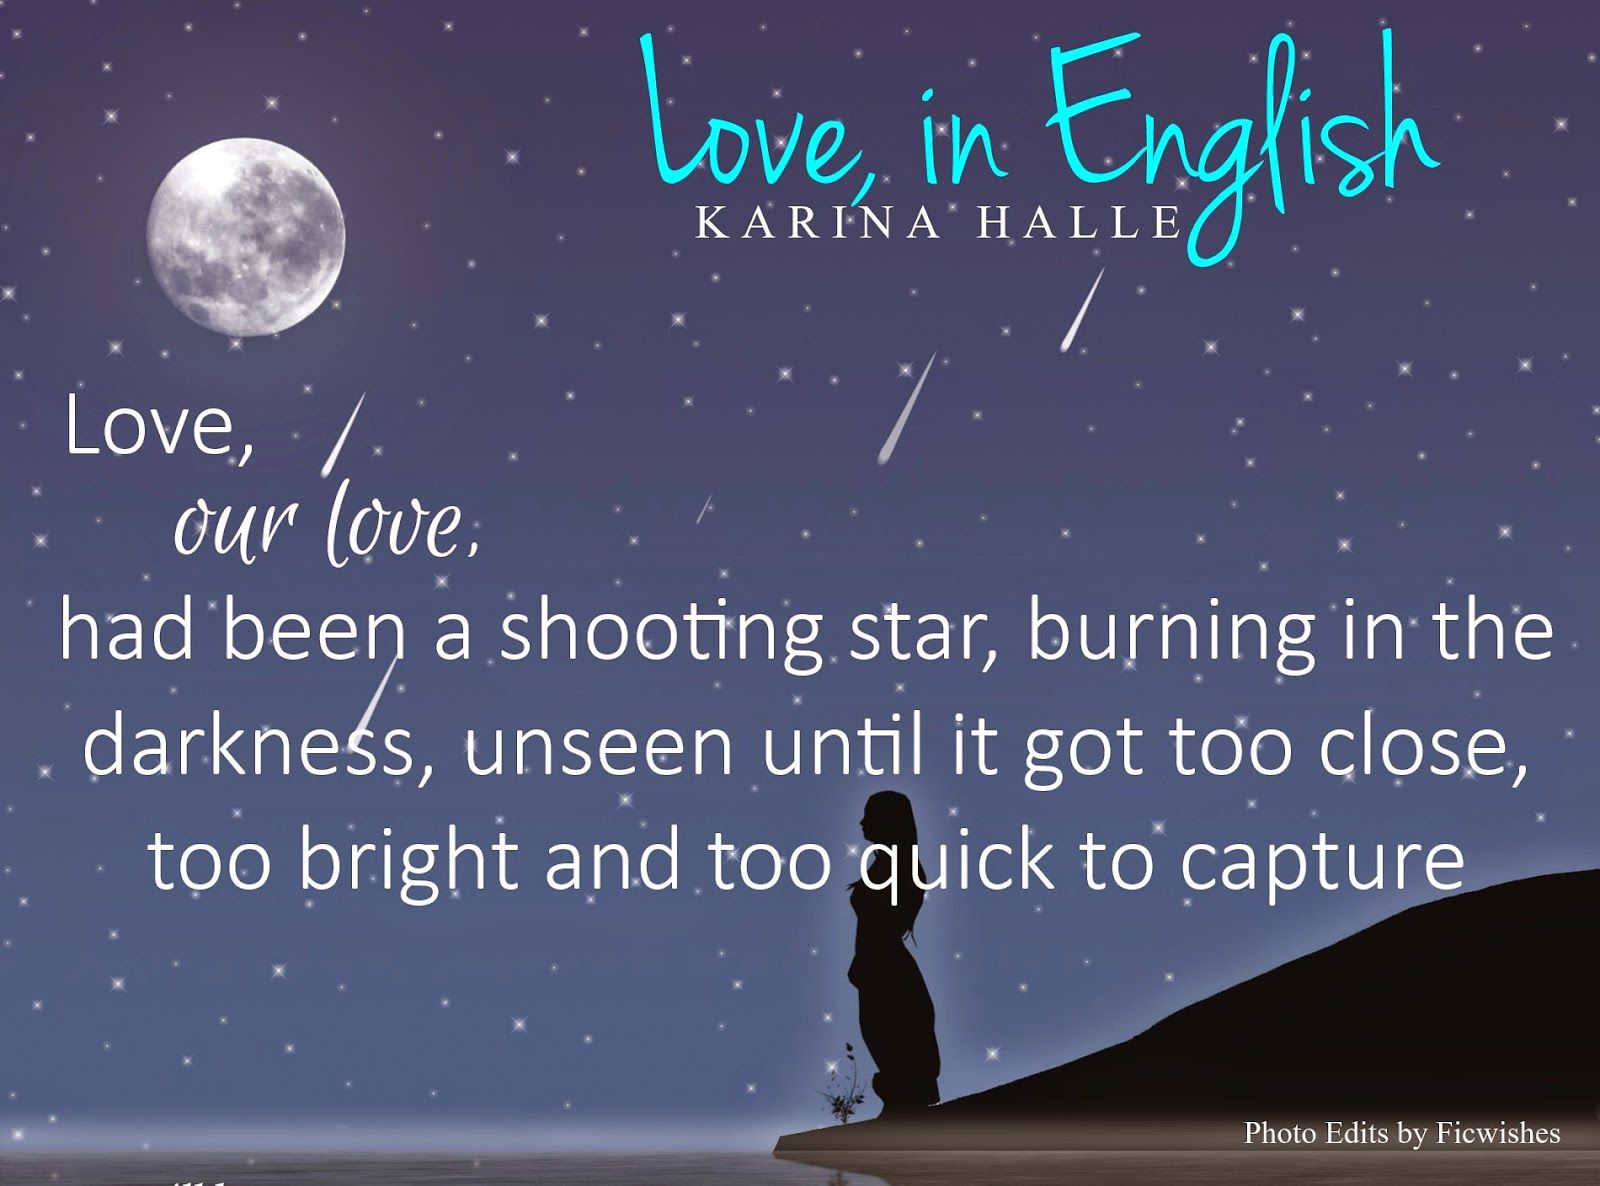 Ficwishes Vanilla Twilight A Review Of Love In English By Karina Halle Favorite Book Quotes Book Quotes How To Speak Spanish